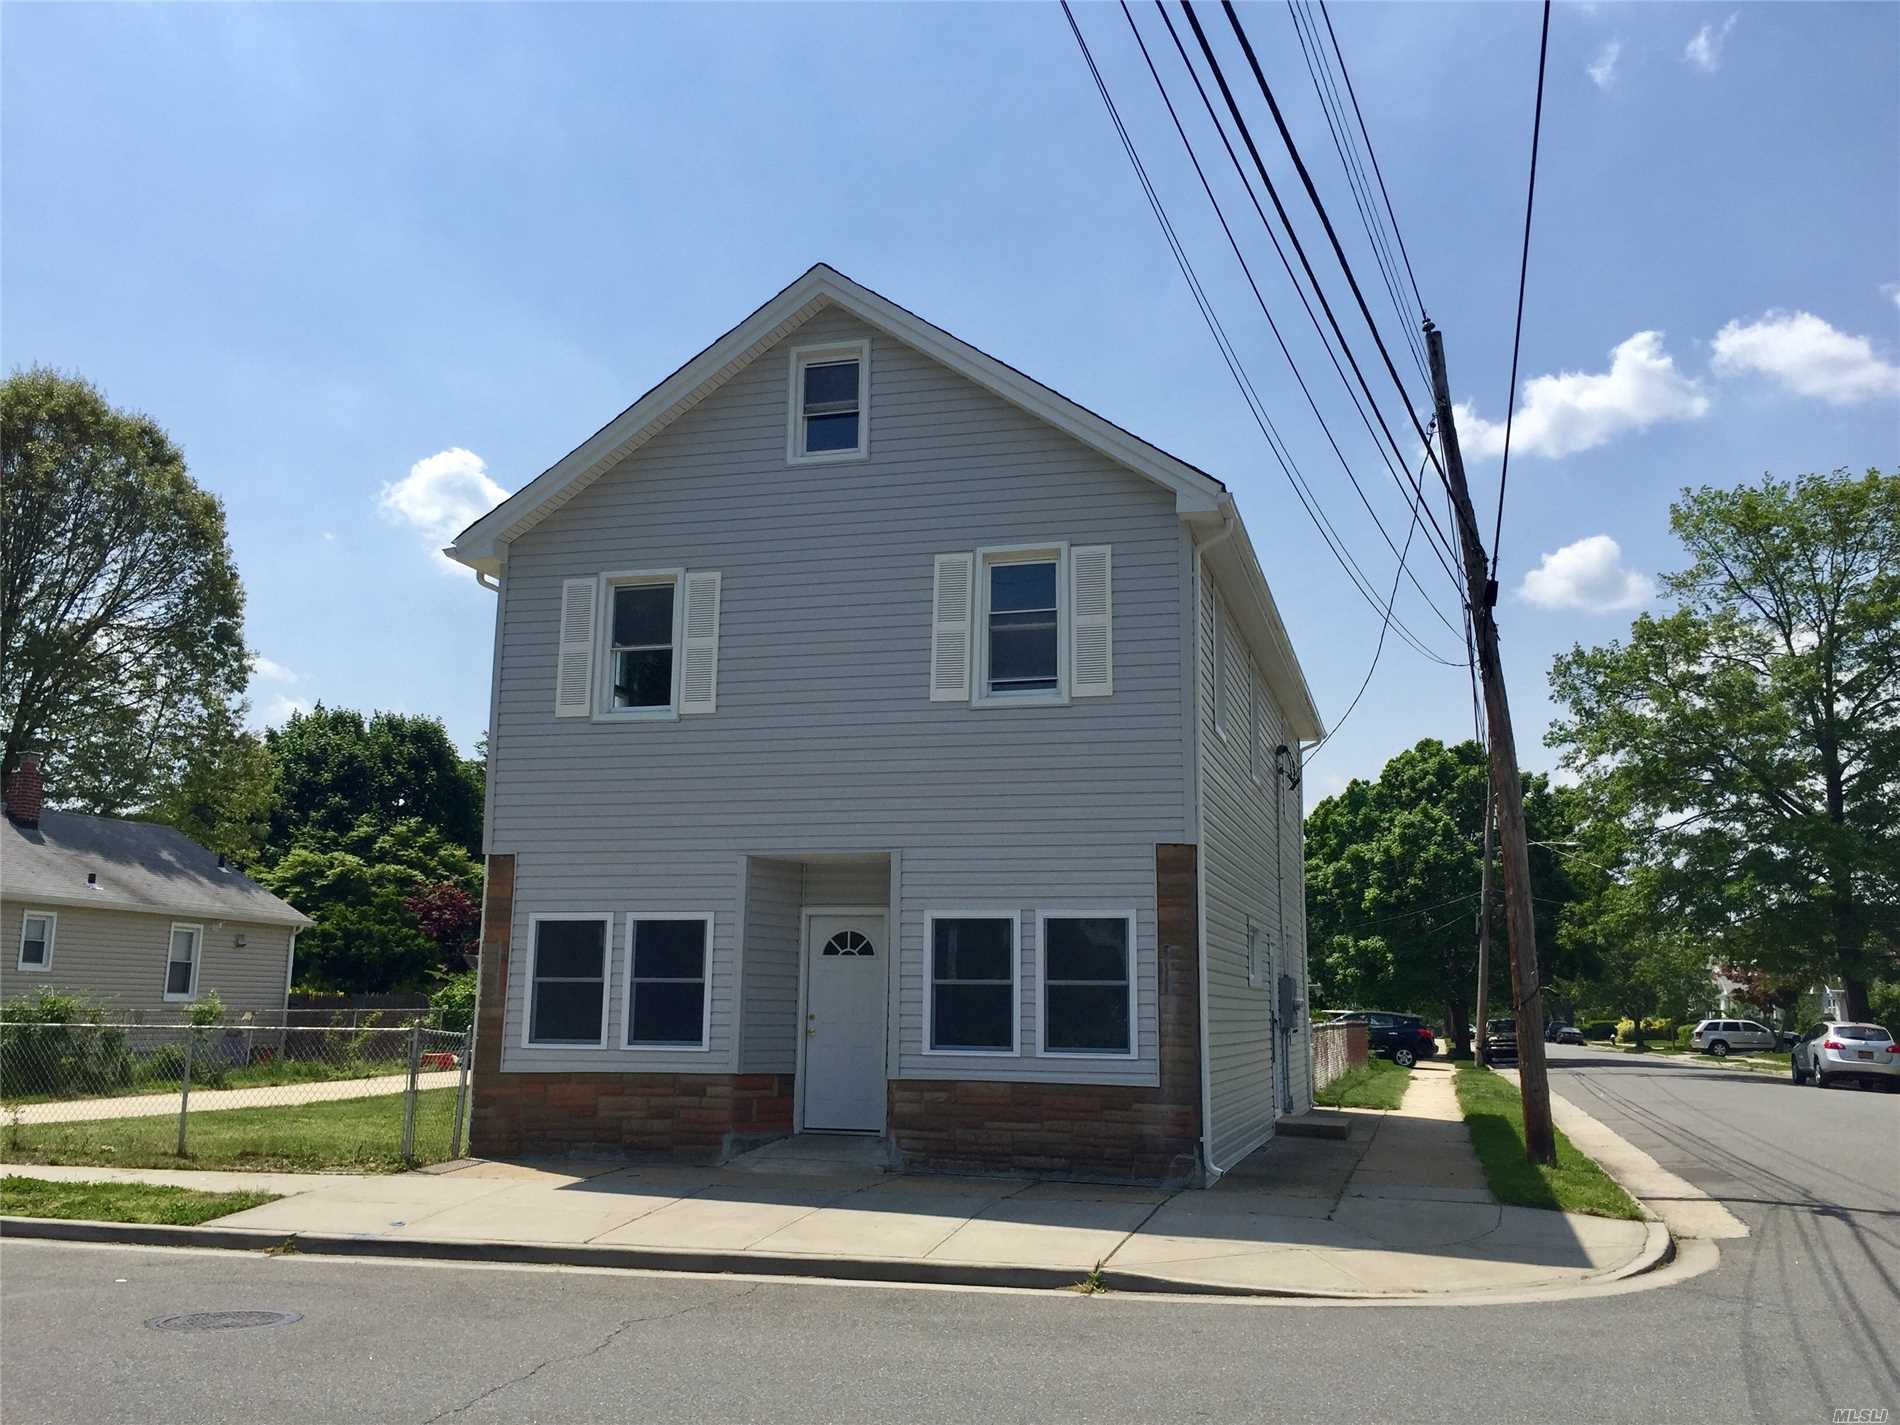 Legal 2 Owner Occupied Home In West Hempstead, Gas Heat, Gas Cooking,  3Bedrooms Over 3 Bedrooms, 2 Baths. Two Car Garage, Large Property, Hardwood Original Floors On 2nd Floor, Wood Laminate On Main Floor. New Roof And New Siding On House And Garage! Unfinished Basement. Separate Hot Water Tank. Drawings Are Pending For 1st Floor, But Should Have Soon. Work Will Be Completed Once Drawings Approved.